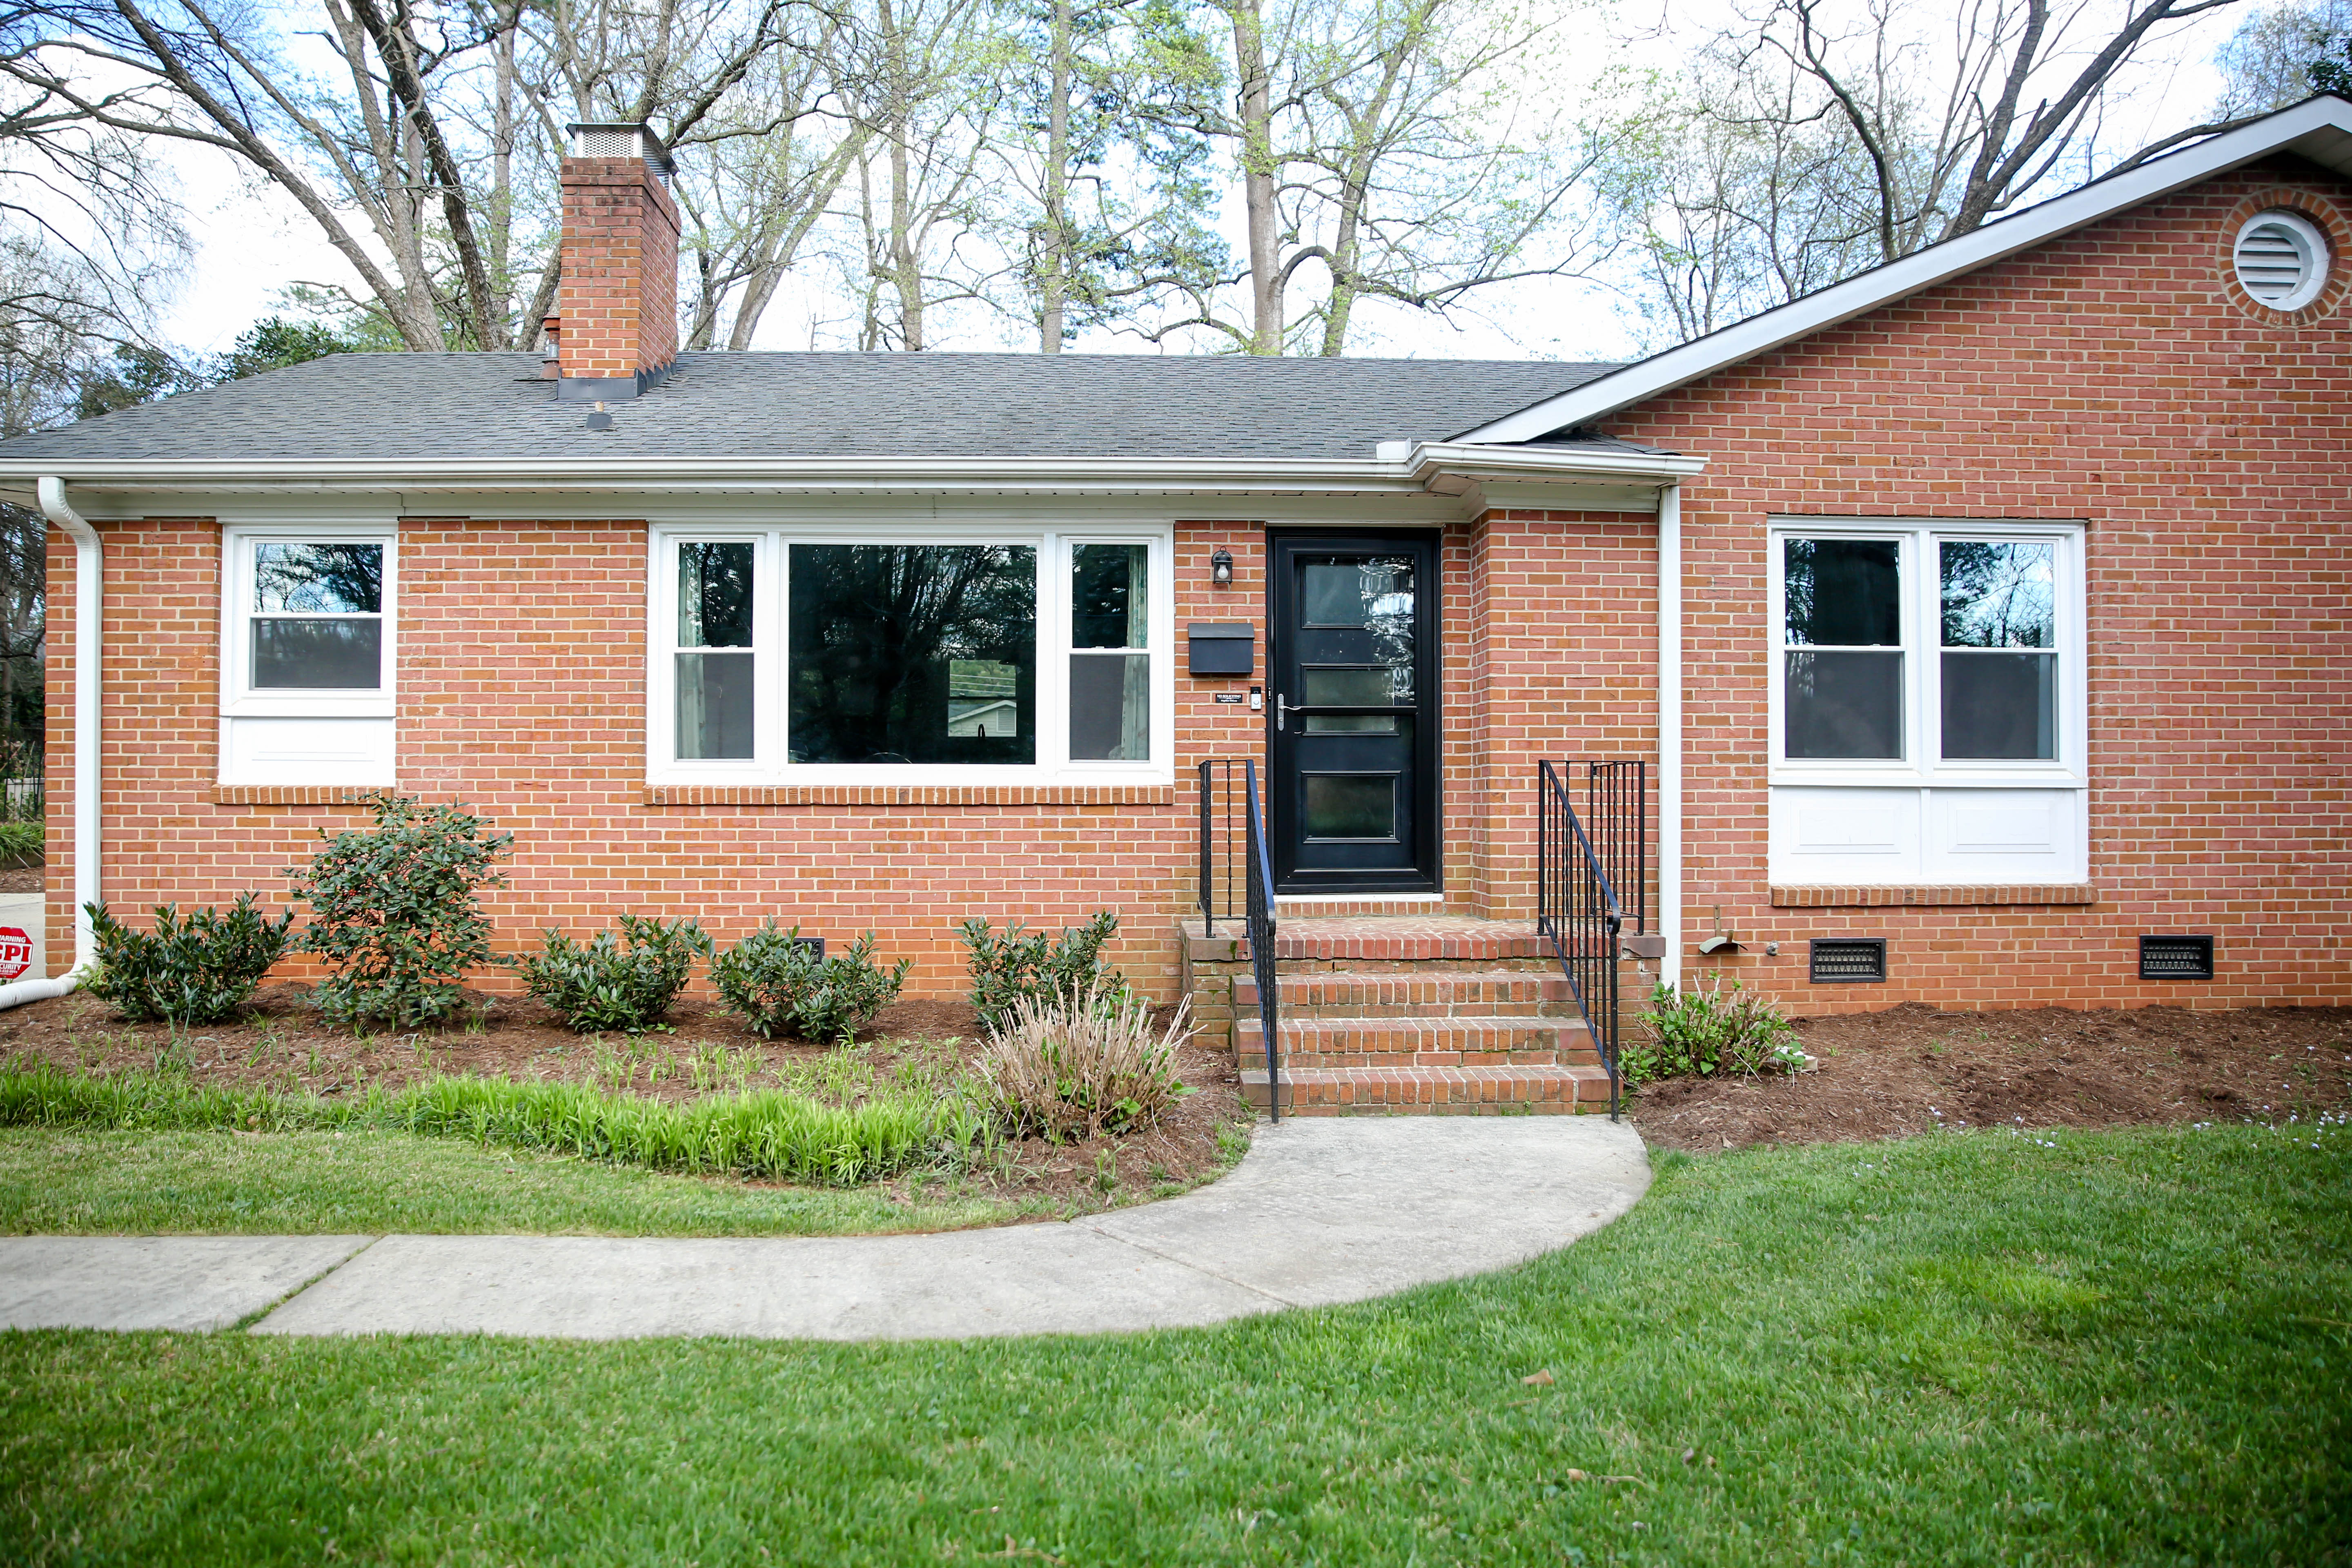 939 Burnley Road, Charlotte, 28210 - Montclaire, Charlotte, NC